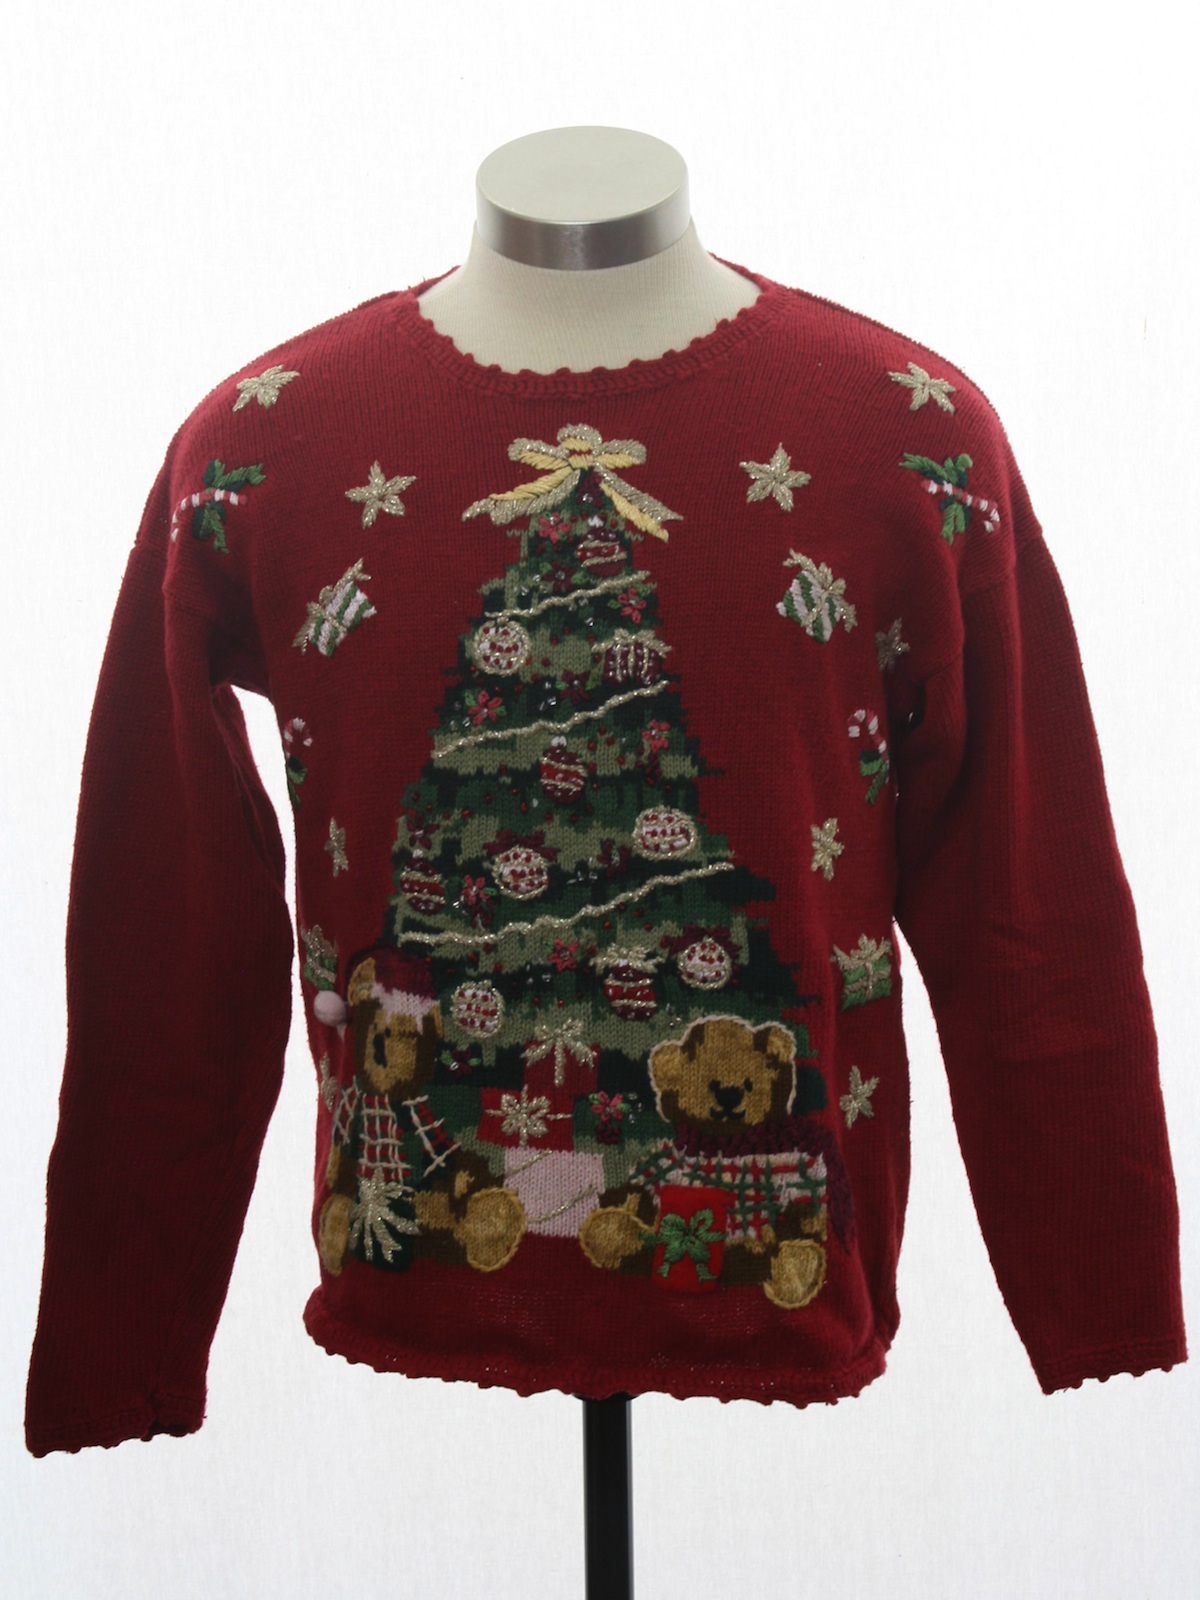 Ladies Girls Or Boys Ugly Christmas Sweater Heirloom Collectibles Petite Womens Girls Or Boys Red Background Cotton Ramie Blend Pullover Longsleeve Ugly Christmas Sweater With Round Neckline Featuring A Giant Beaded Christmas